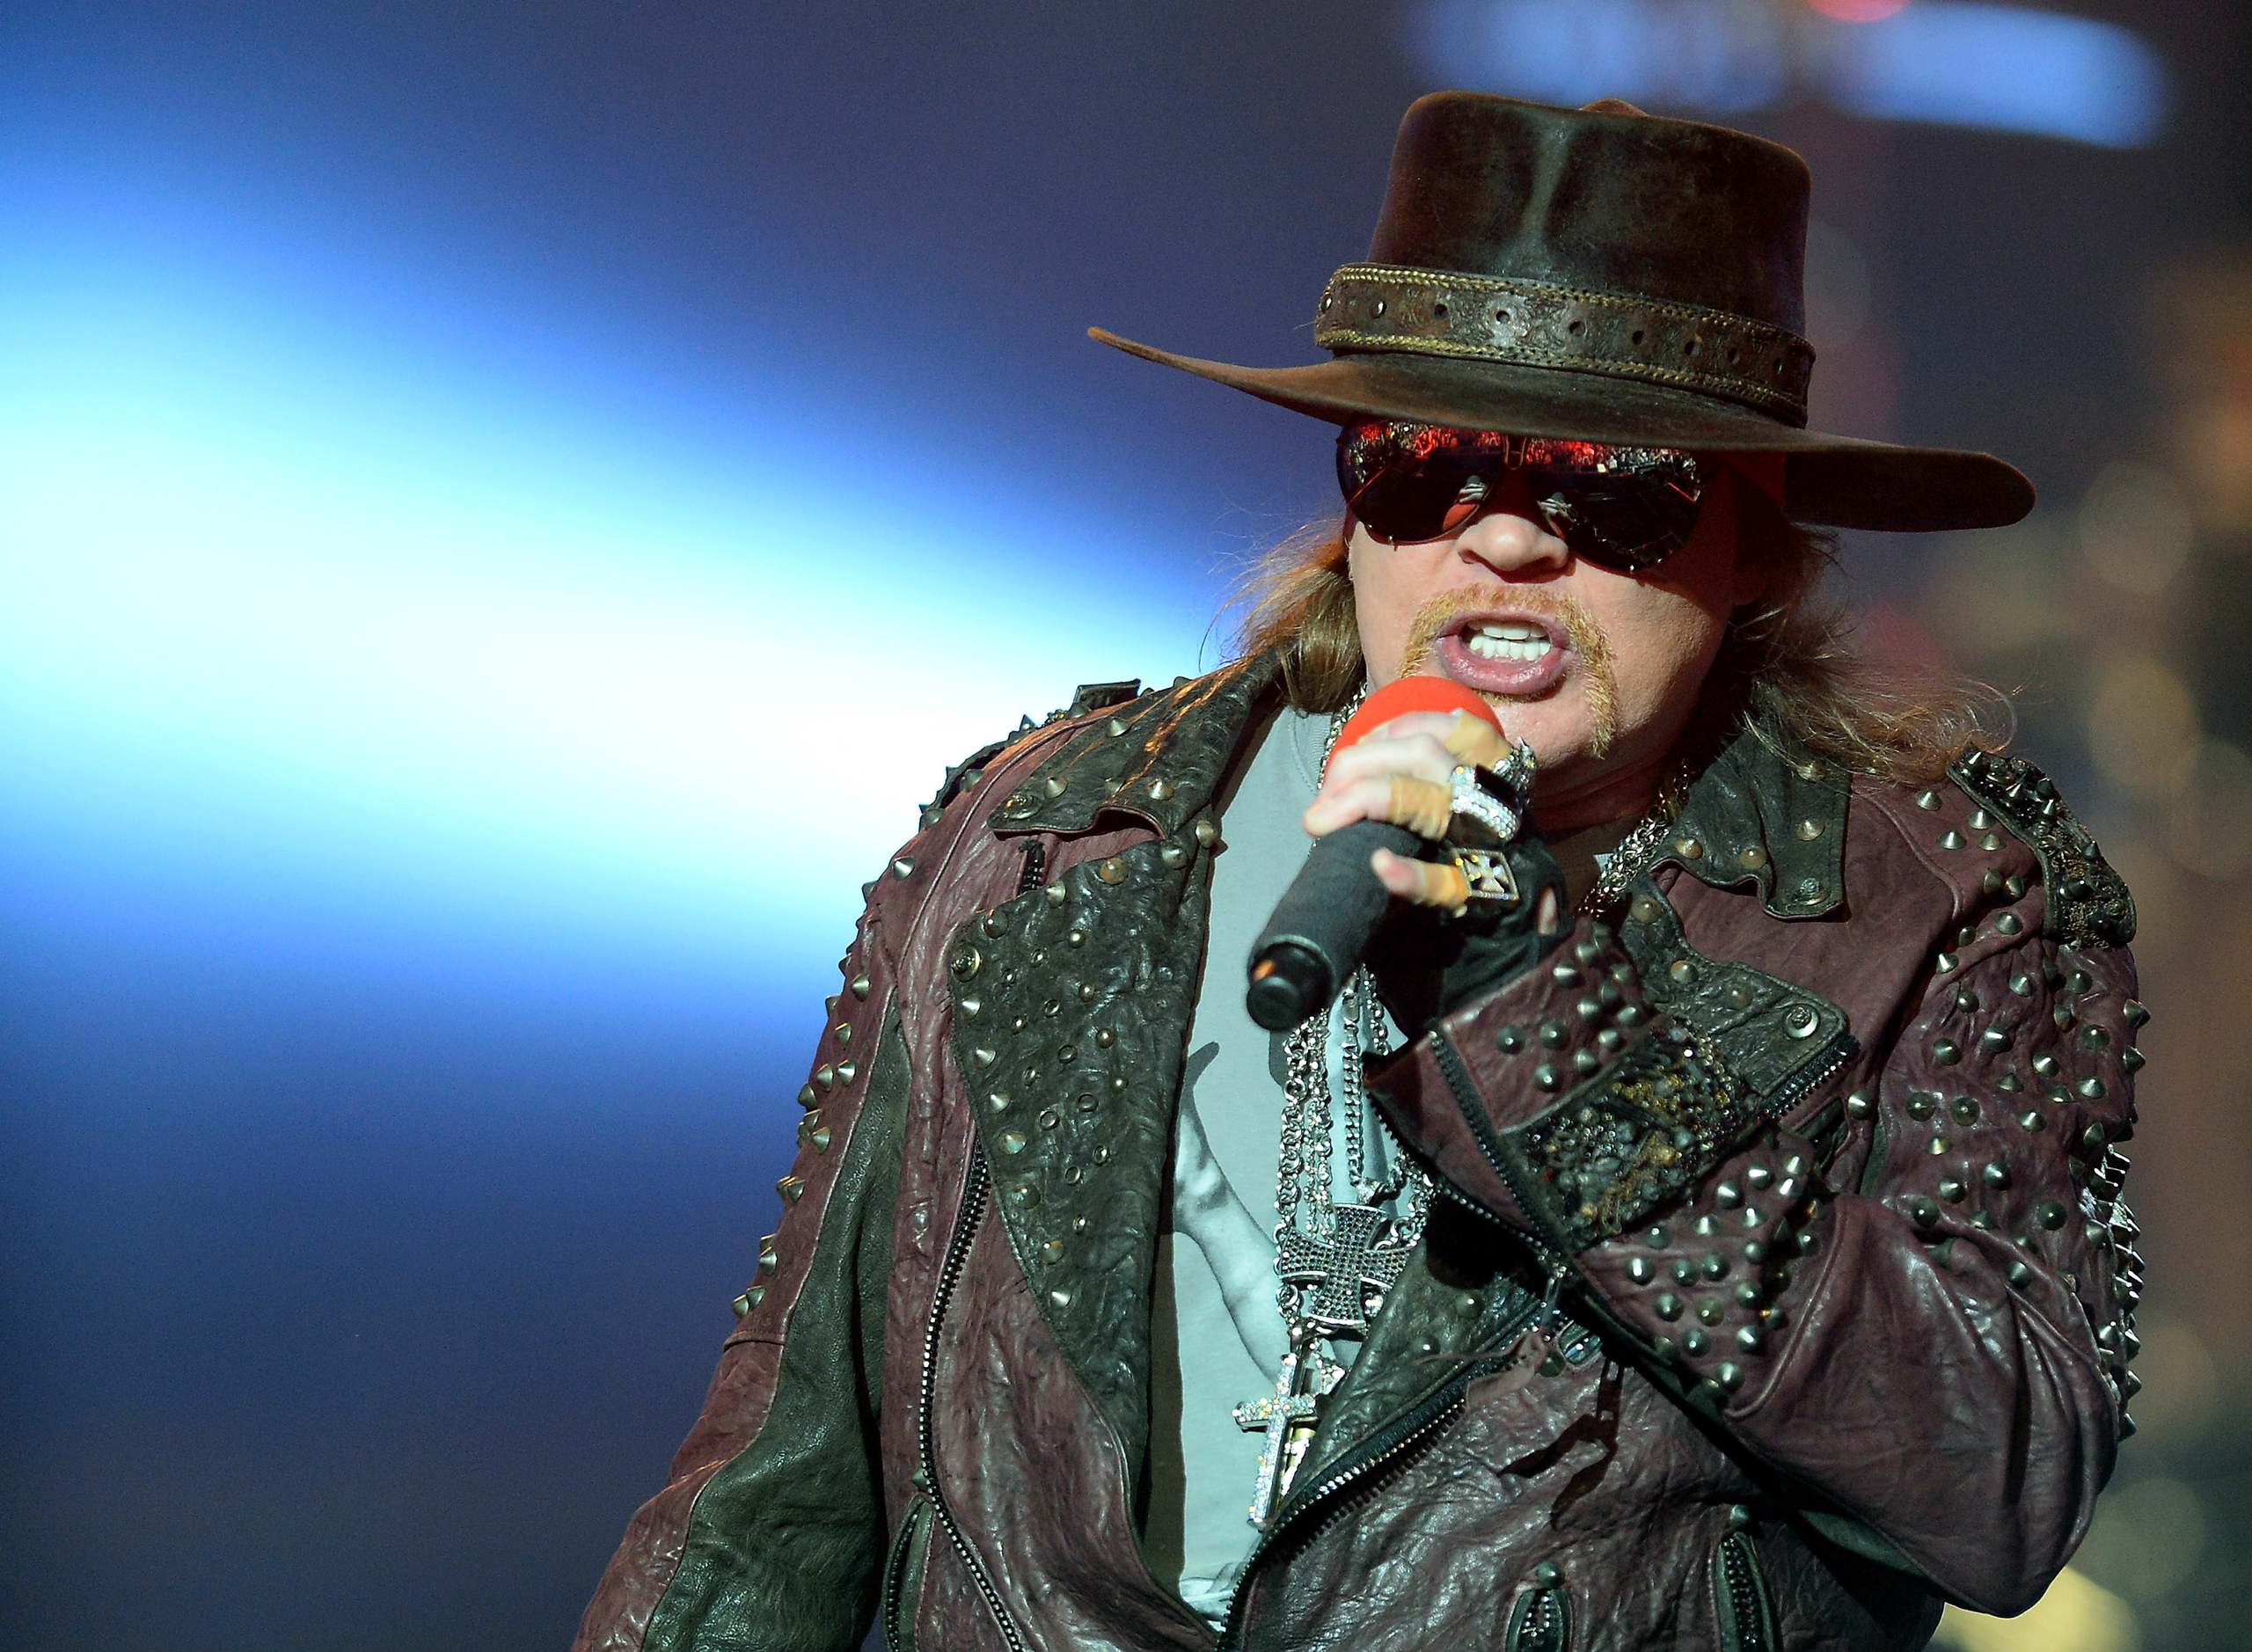 Axl Rose performs during  Guns N' Roses - An Evening of Destruction. No Trickery!  in Las Vegas, Nevada, on May 21, 2014.